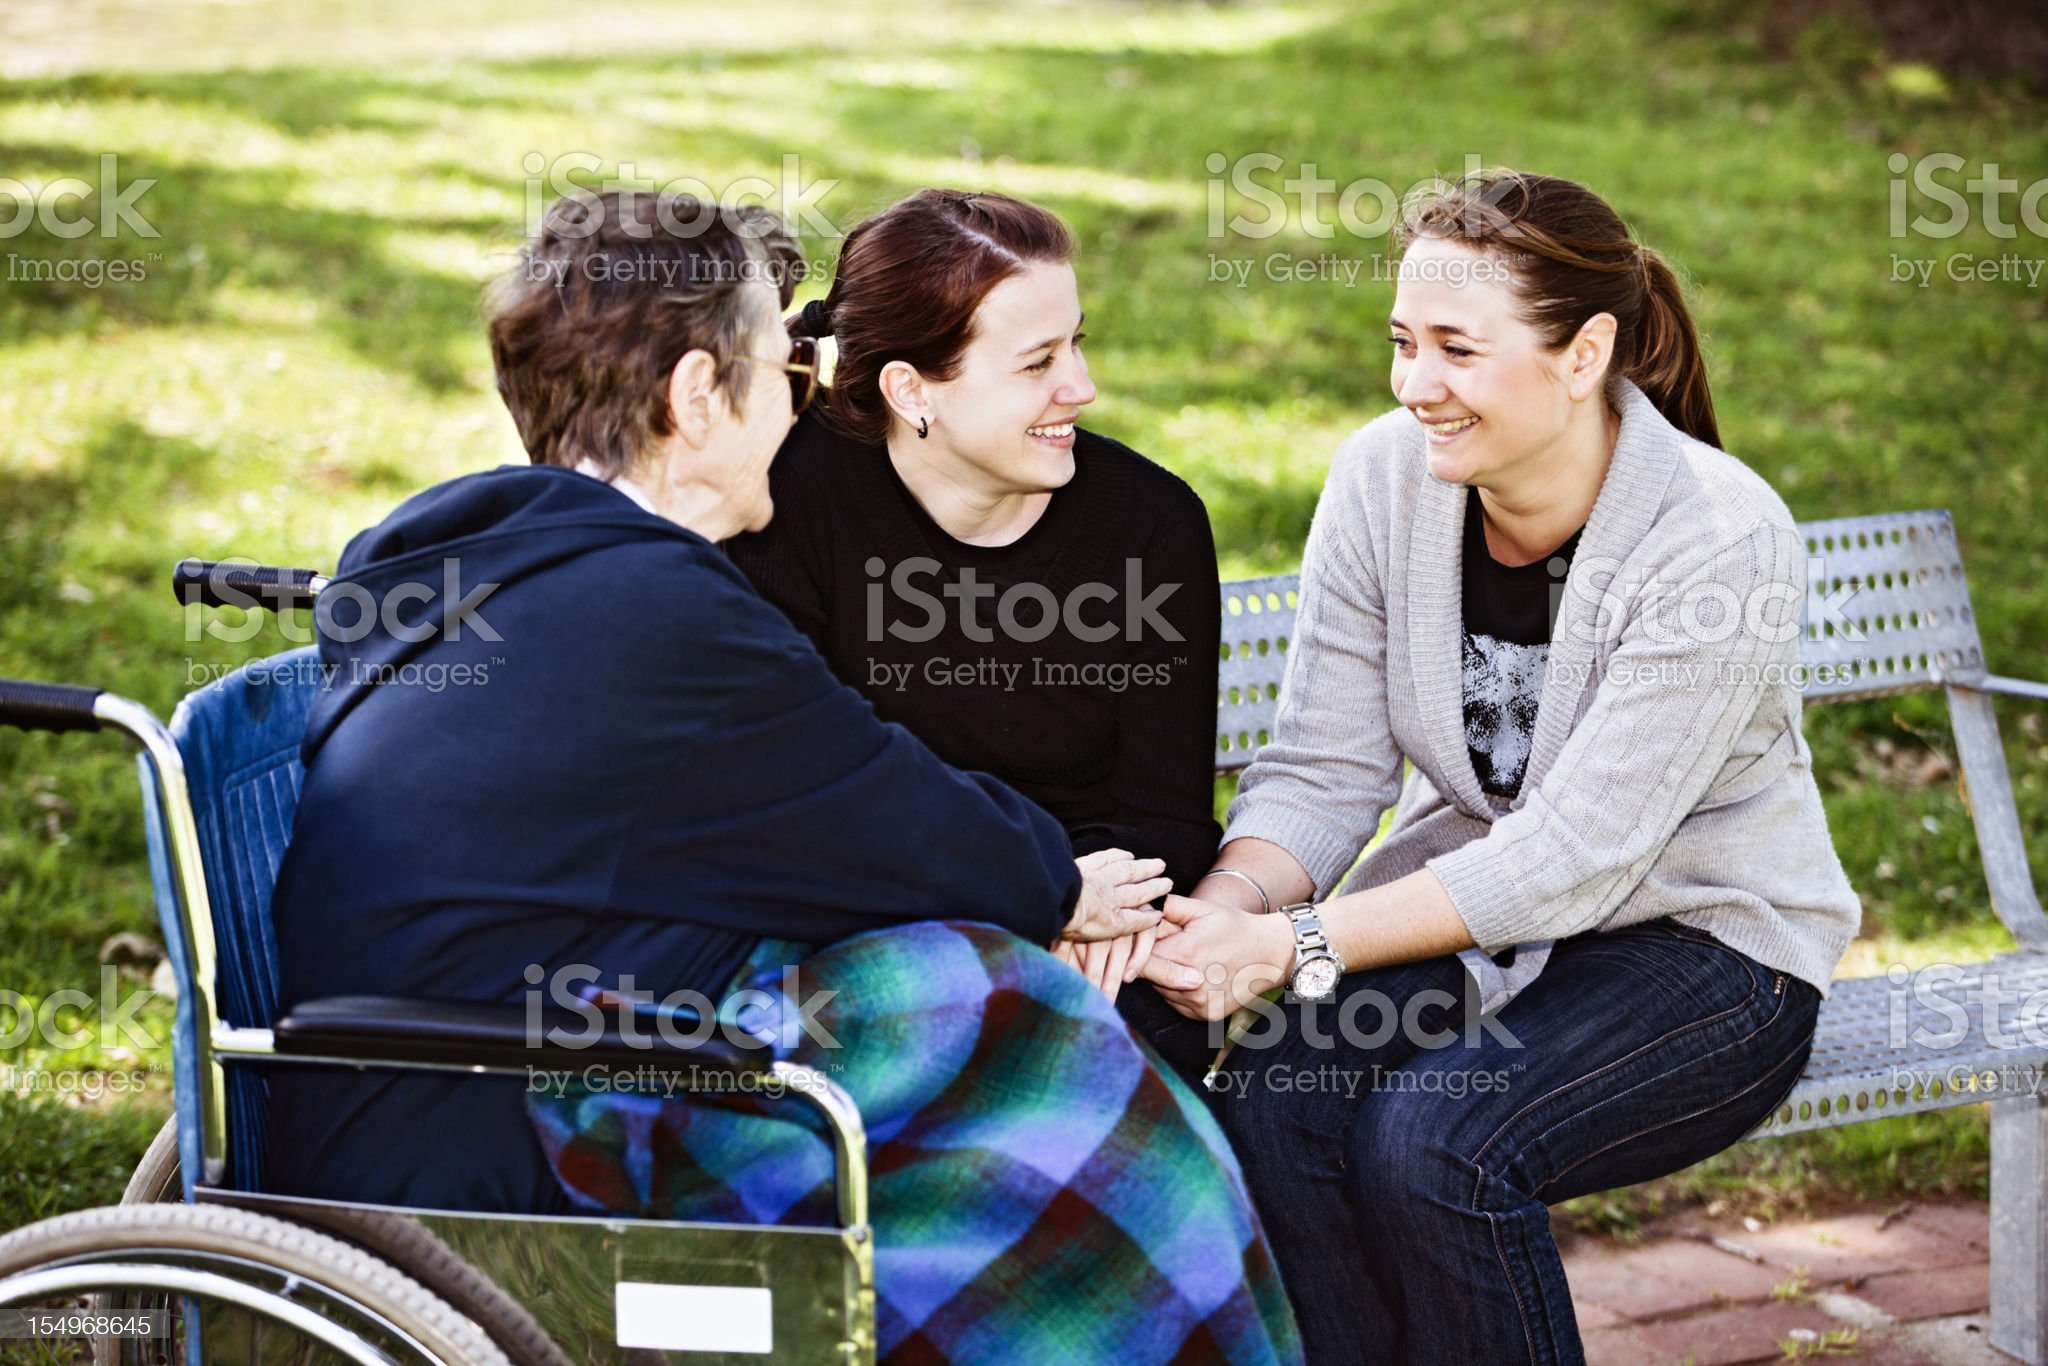 Old woman in wheelchair and two young women clasp hands royalty-free stock photo